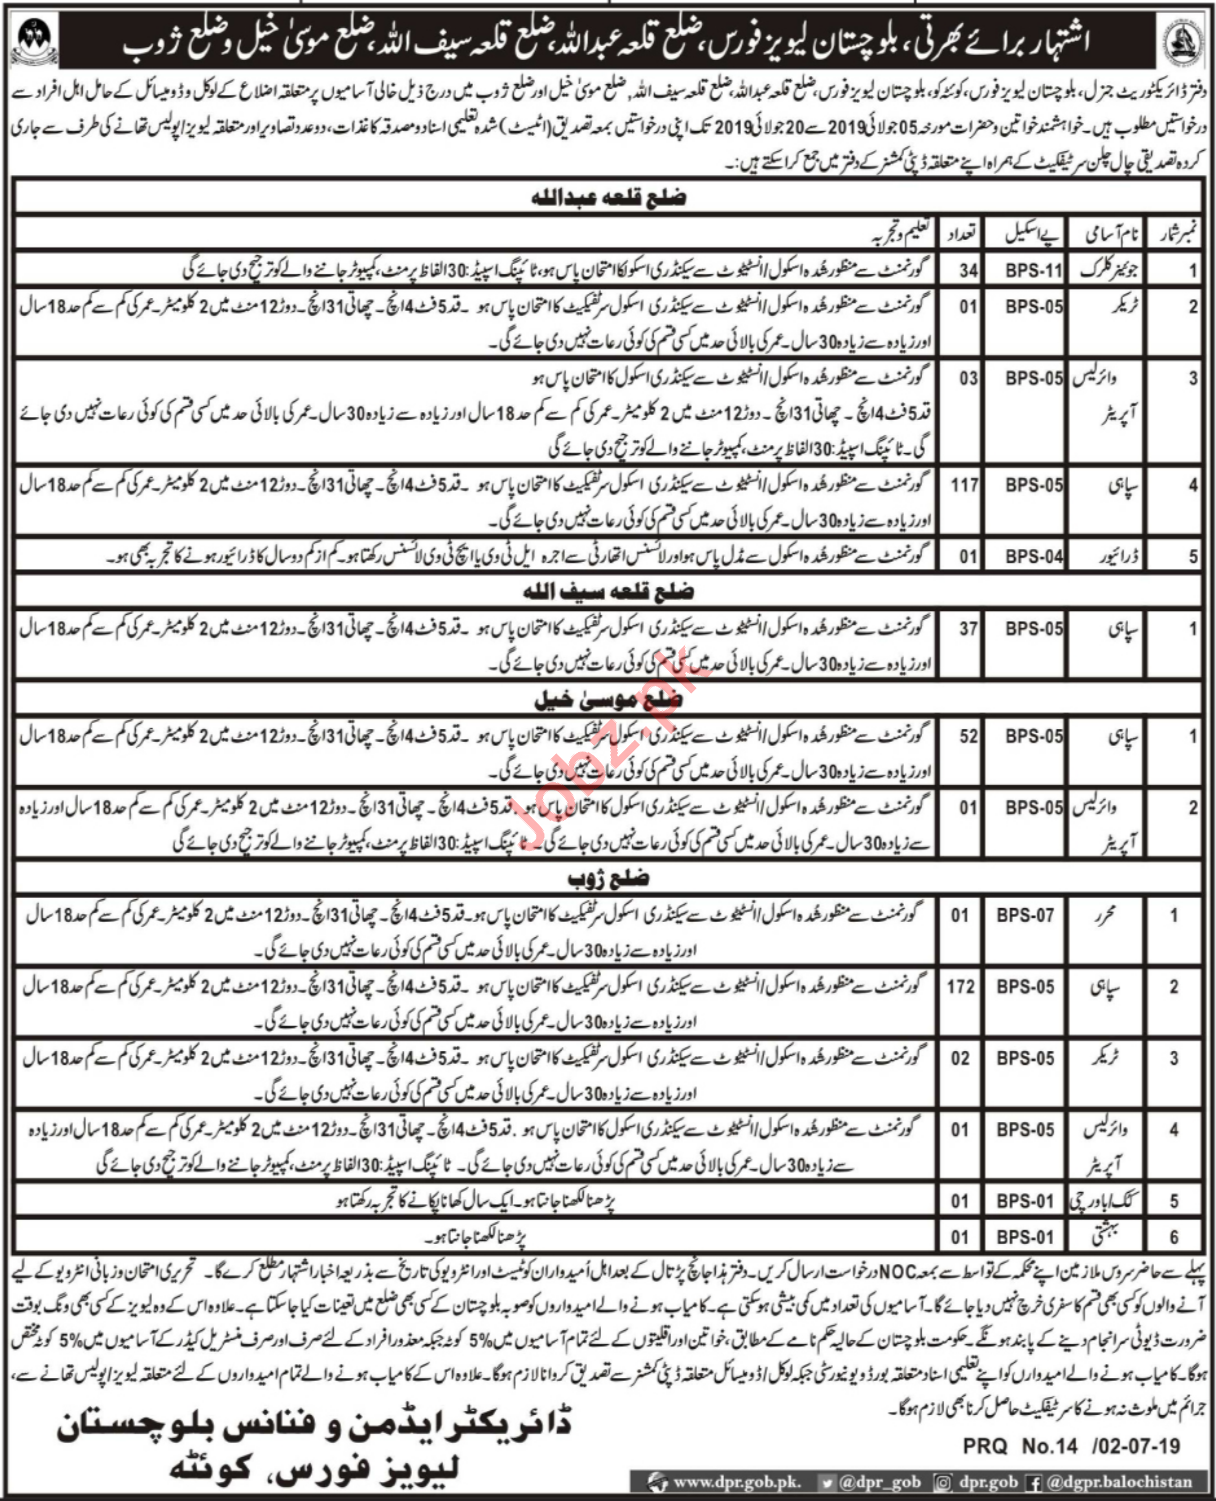 Balochistan Levies Force Police Department Jobs 2019